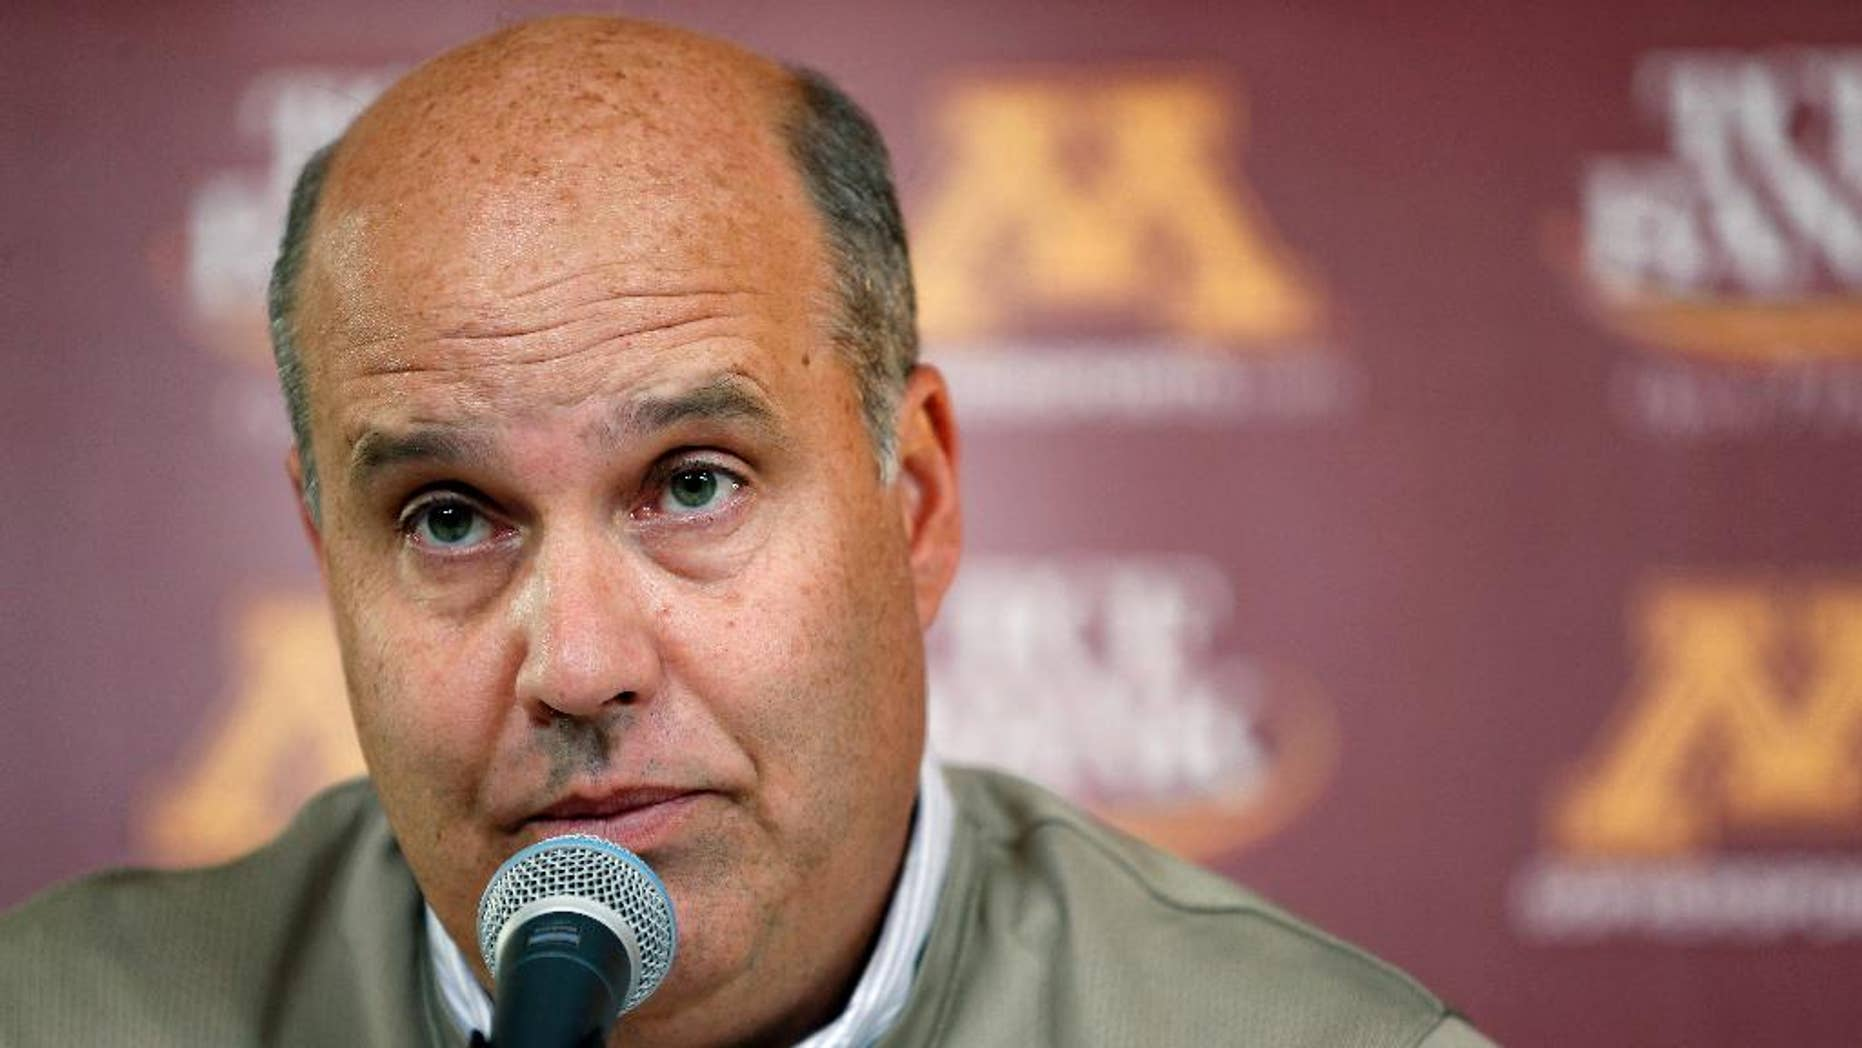 FILE - In this Oct. 10, 2013, file photo, Minnesota athletic director Norwood Teague speaks at a news conference in Minneapolis. The University of Minnesota announced Friday, Aug. 7, 2015, that Teague submitted his resignation after three years on the job. (Carlos Gonzalez/Star Tribune via AP, File)